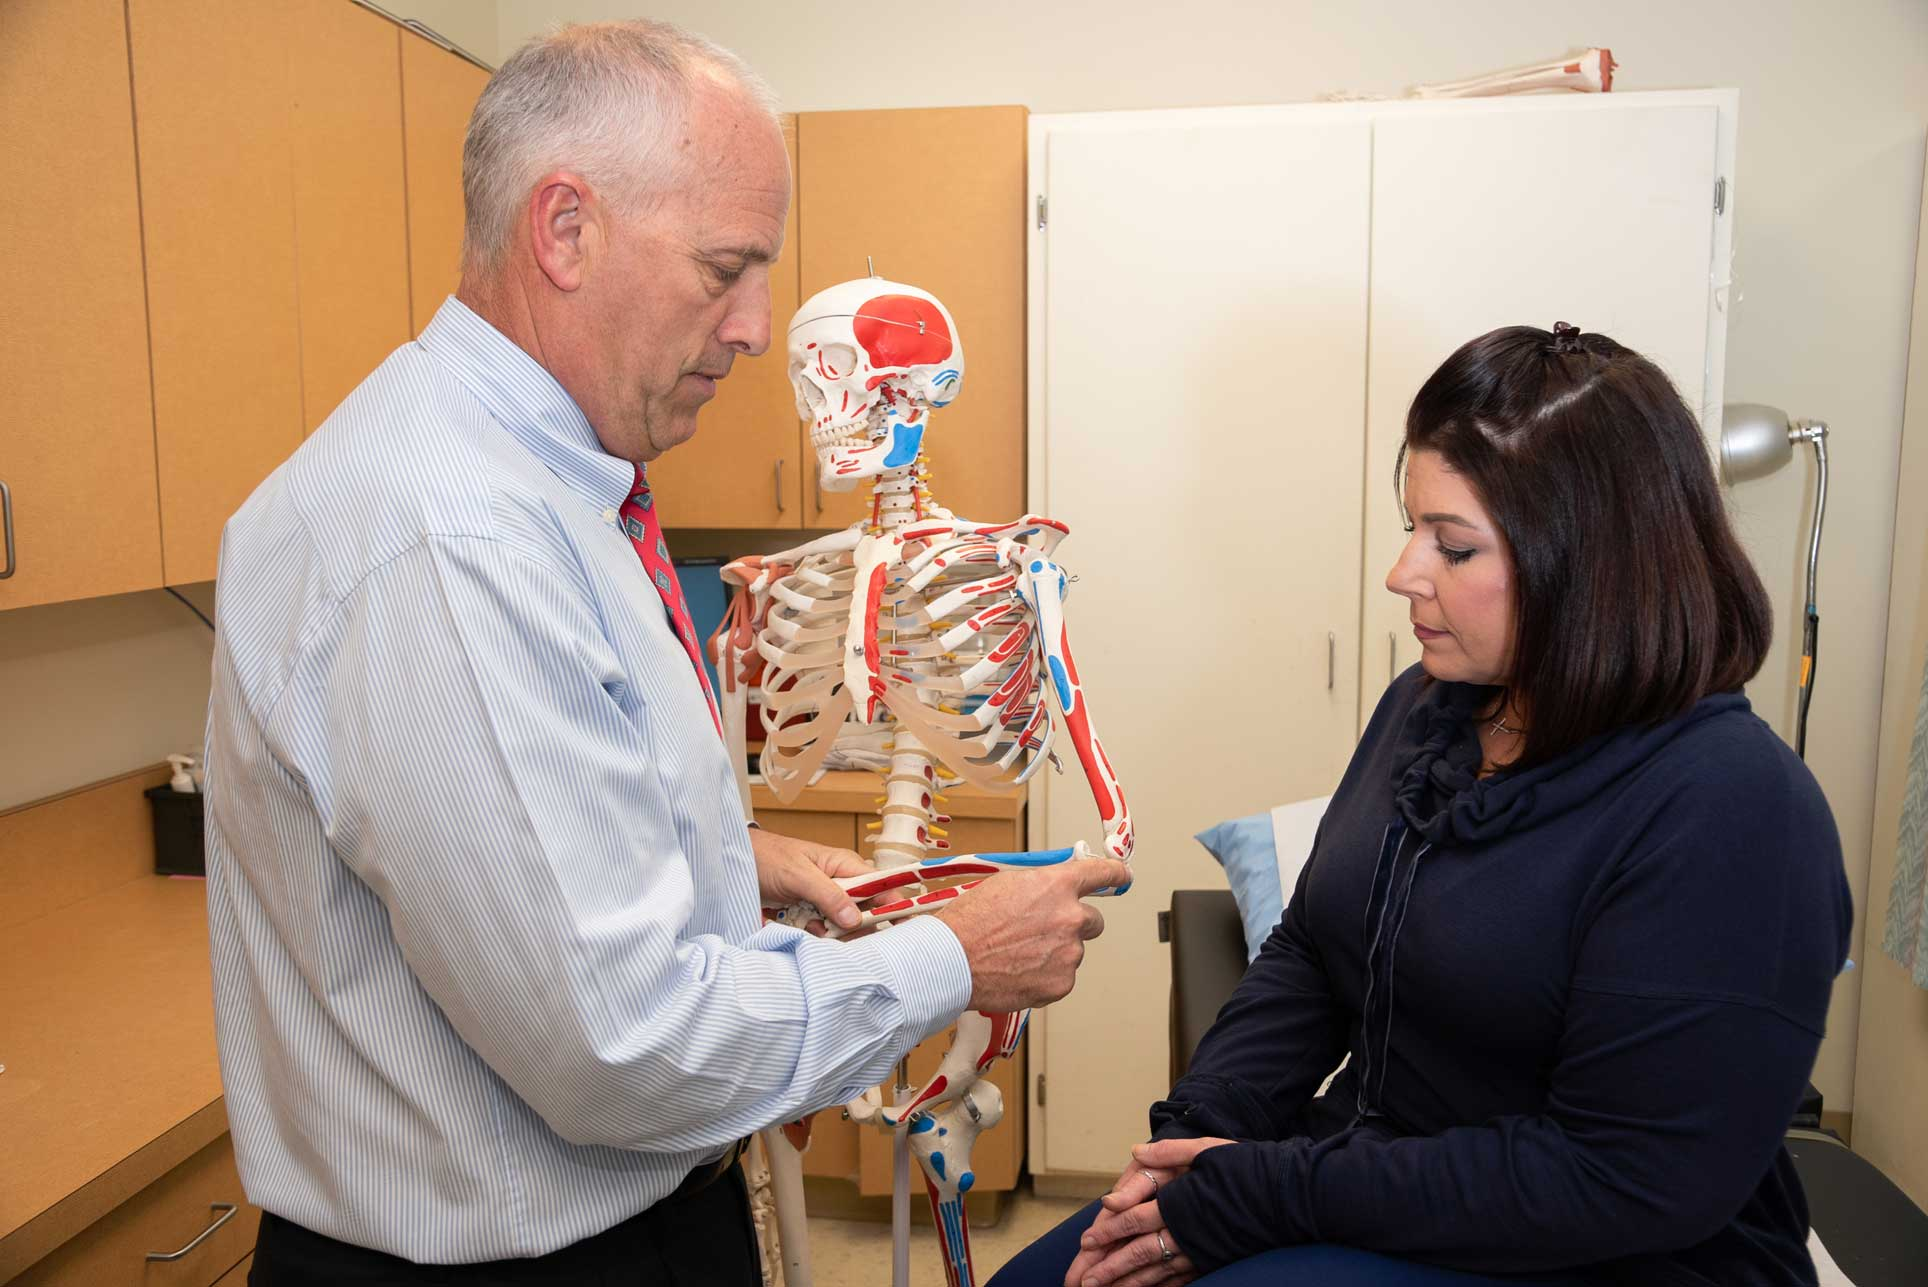 St. Tammany Health System Bone and Joint Clinic doctor working with female patient